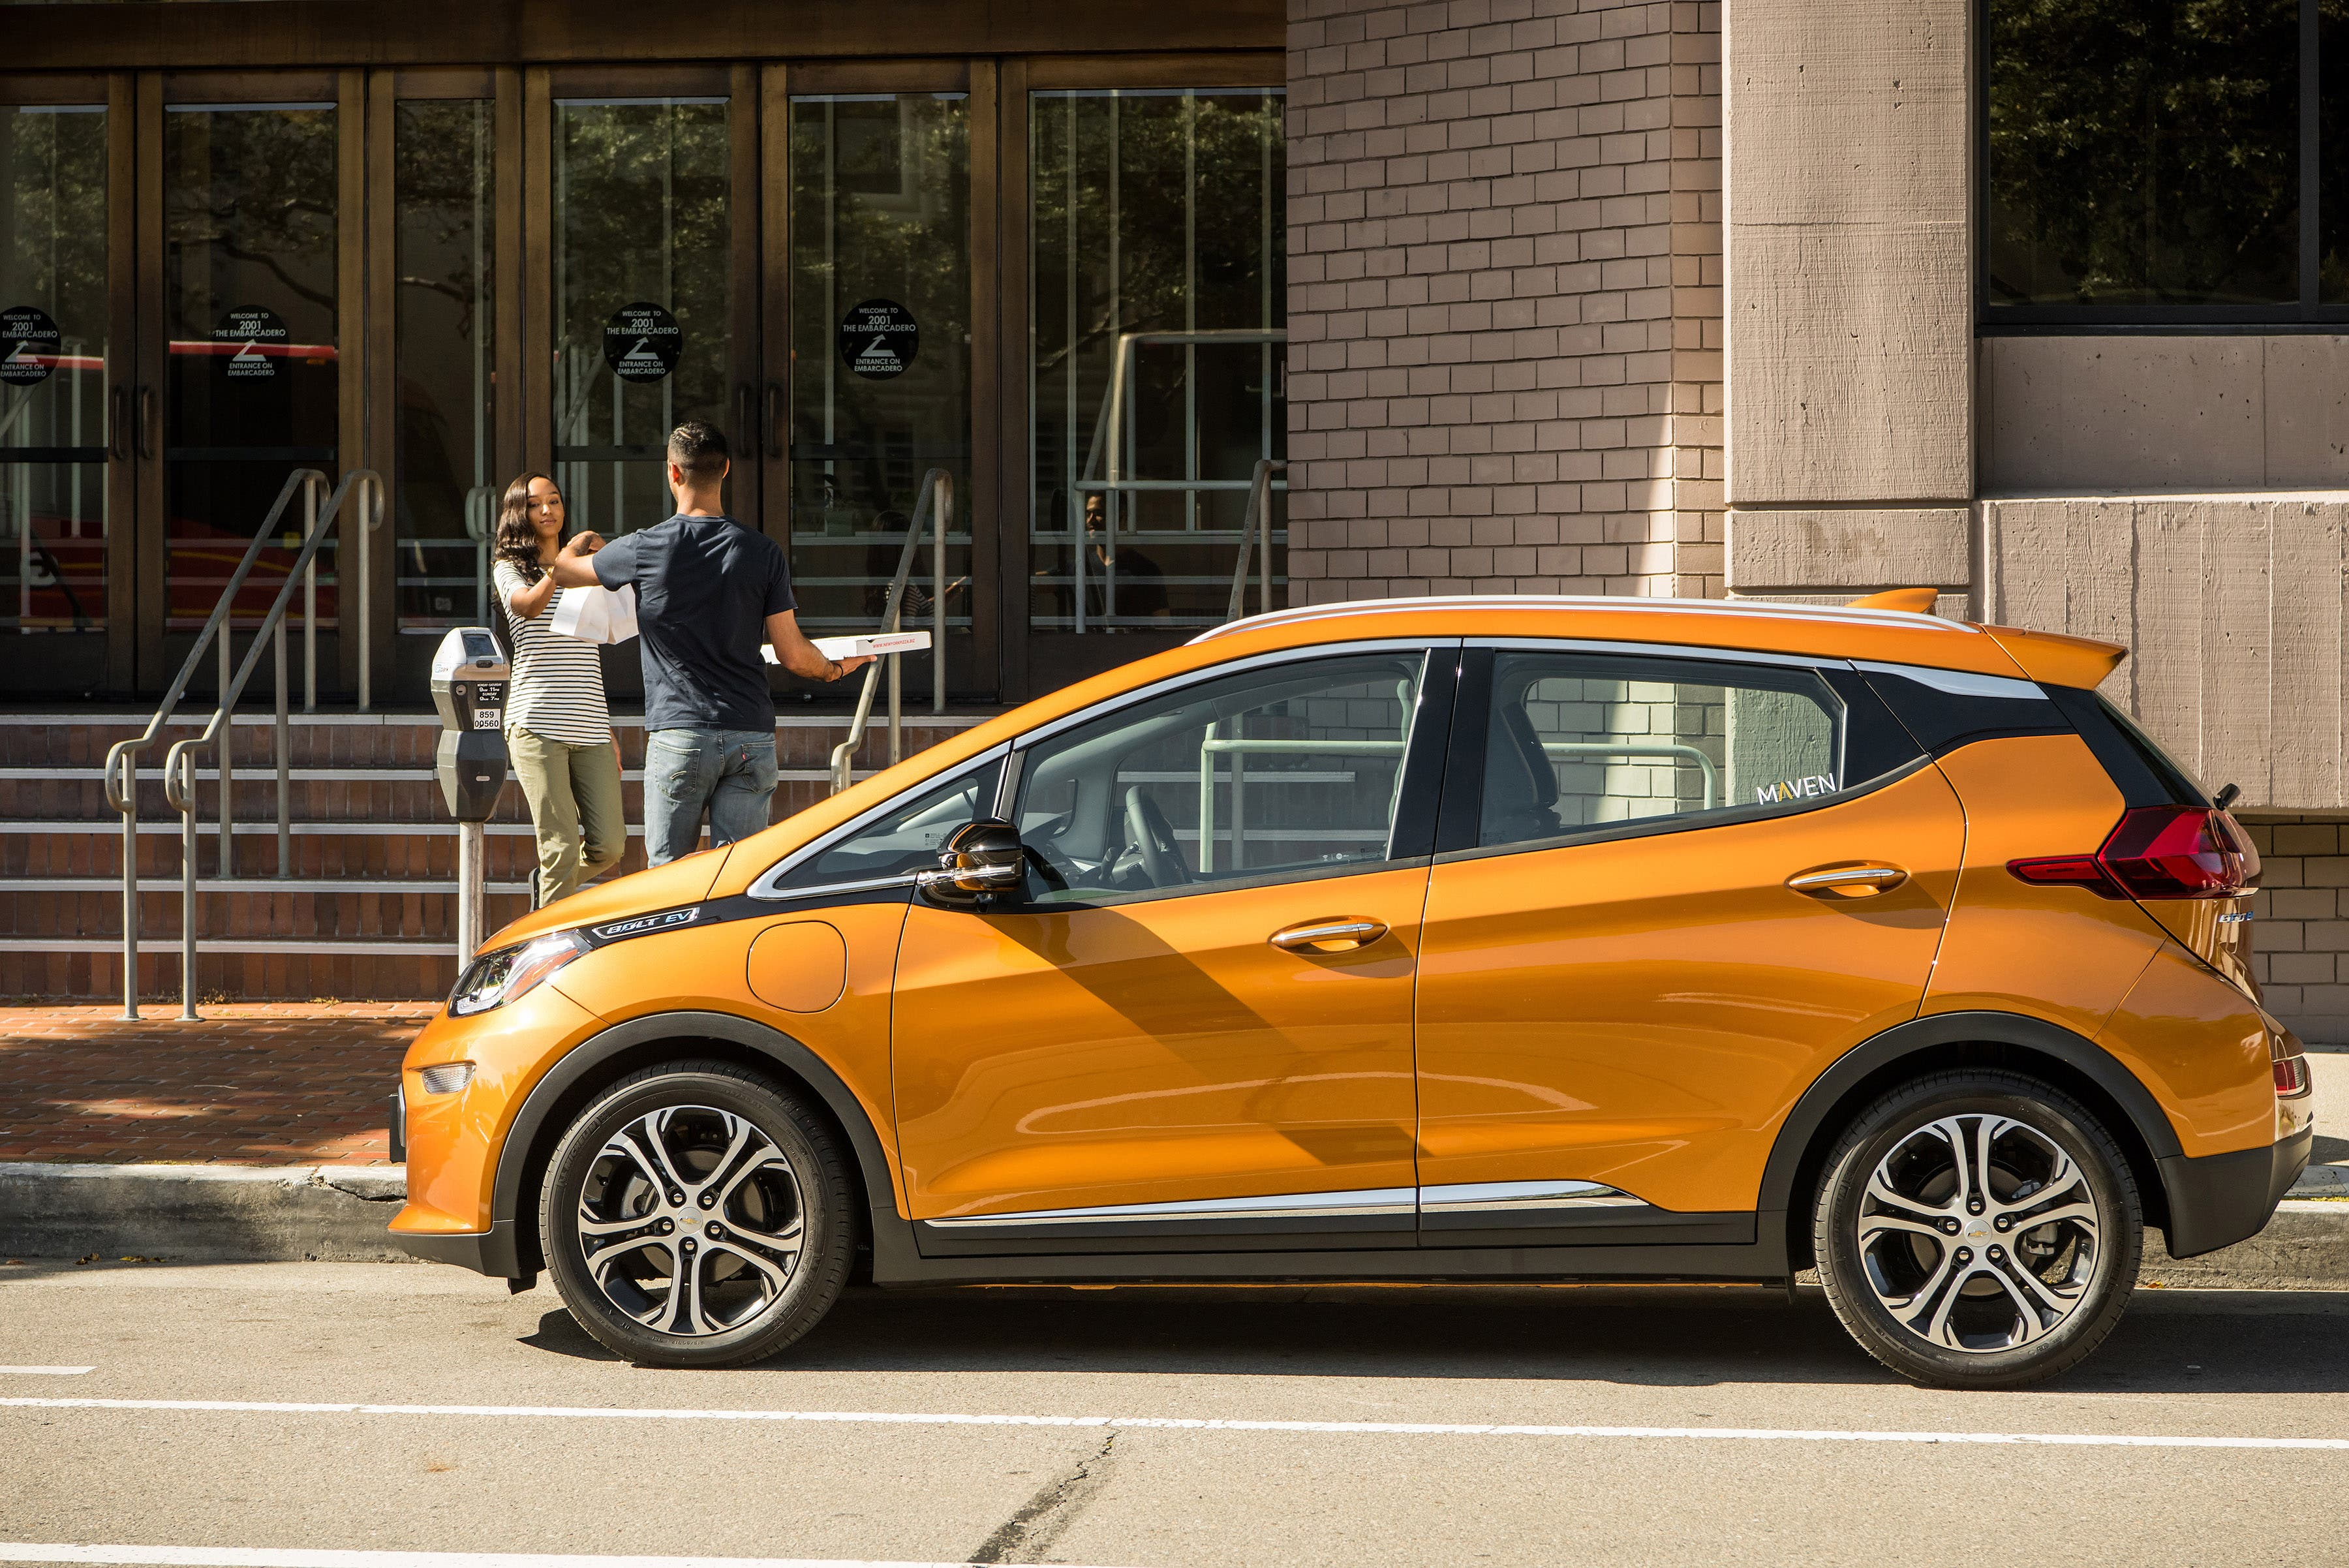 Notably The Press Release Announcing News Included Up To Date S Figures For Chevy Bolt Ev That Are Worth Recounting Here